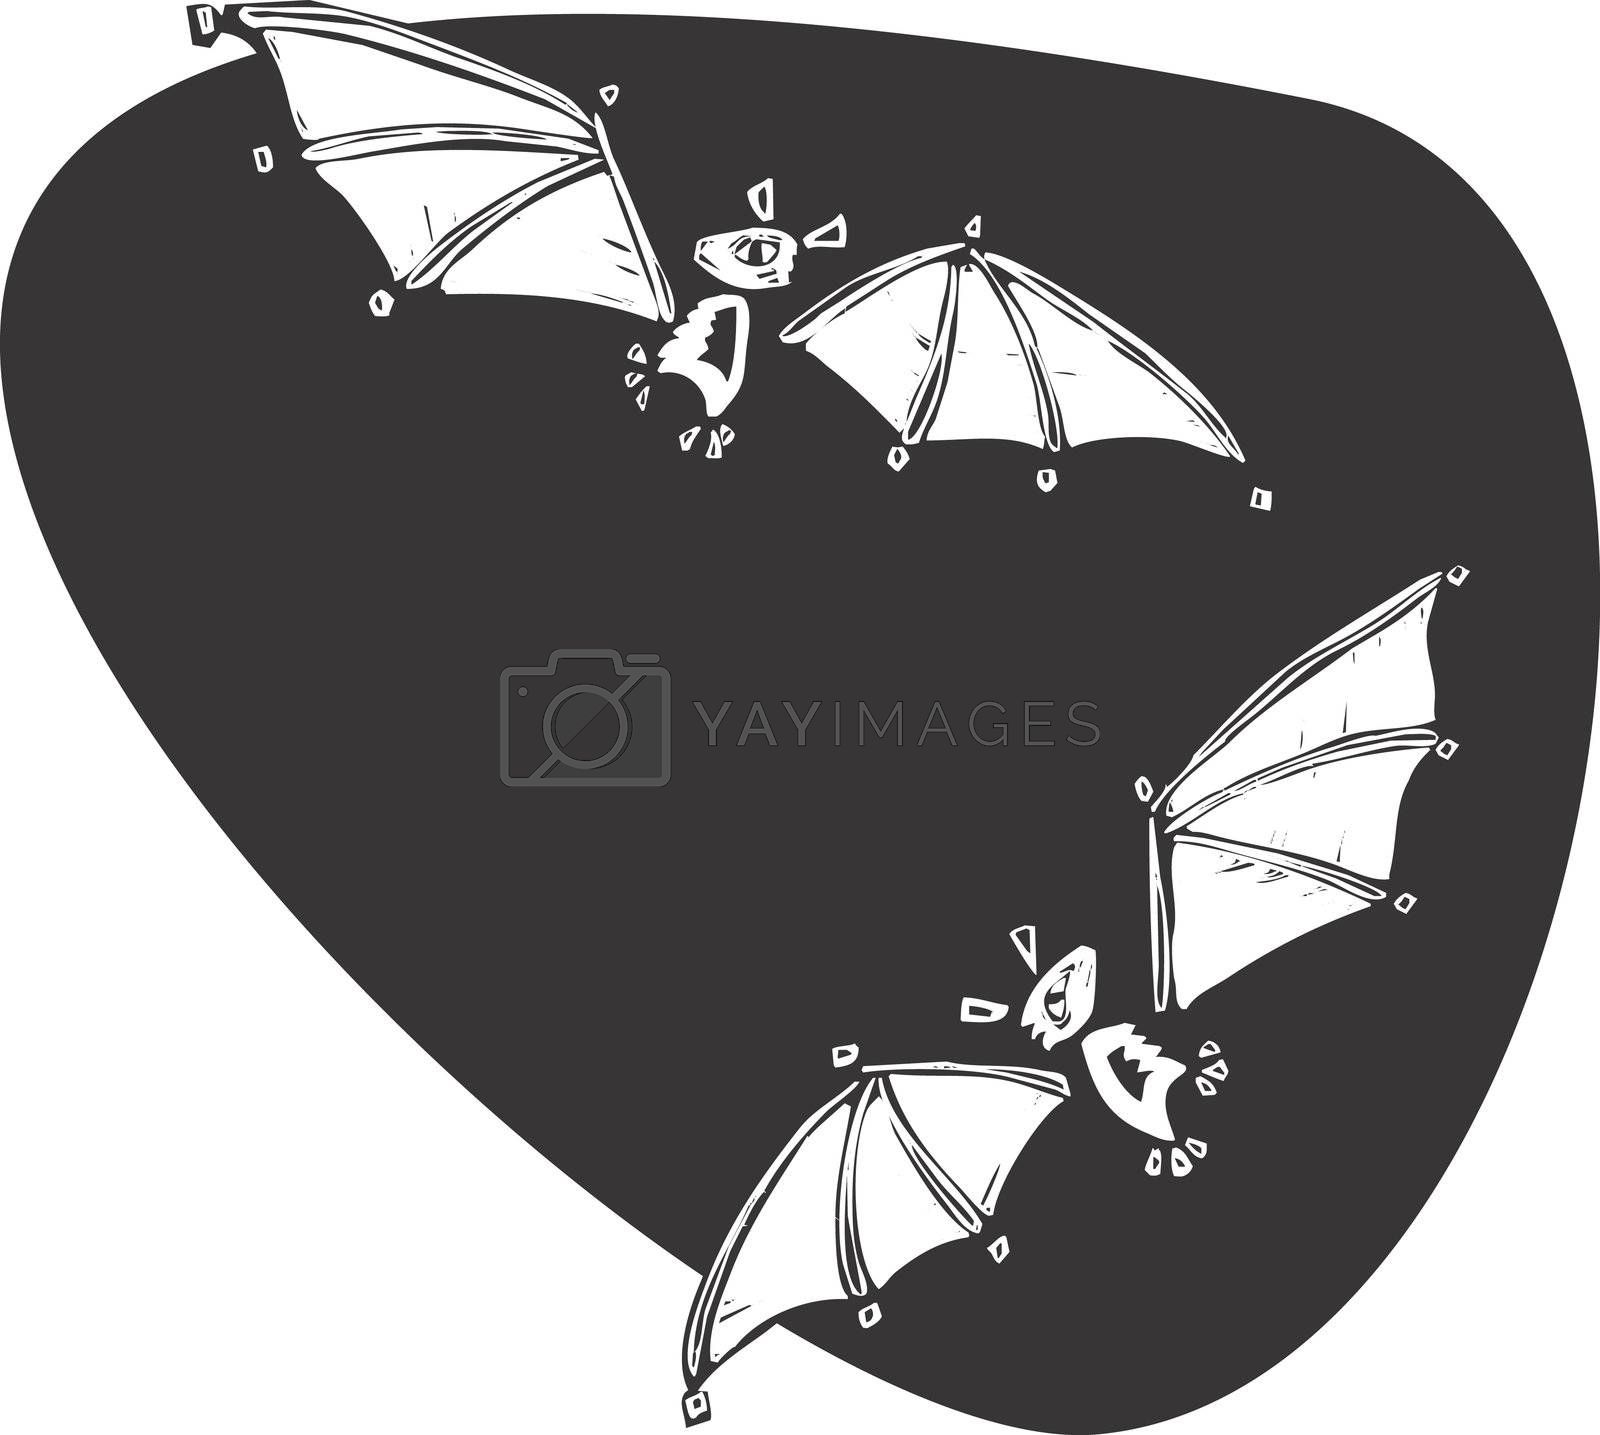 Two bats flying together in the night